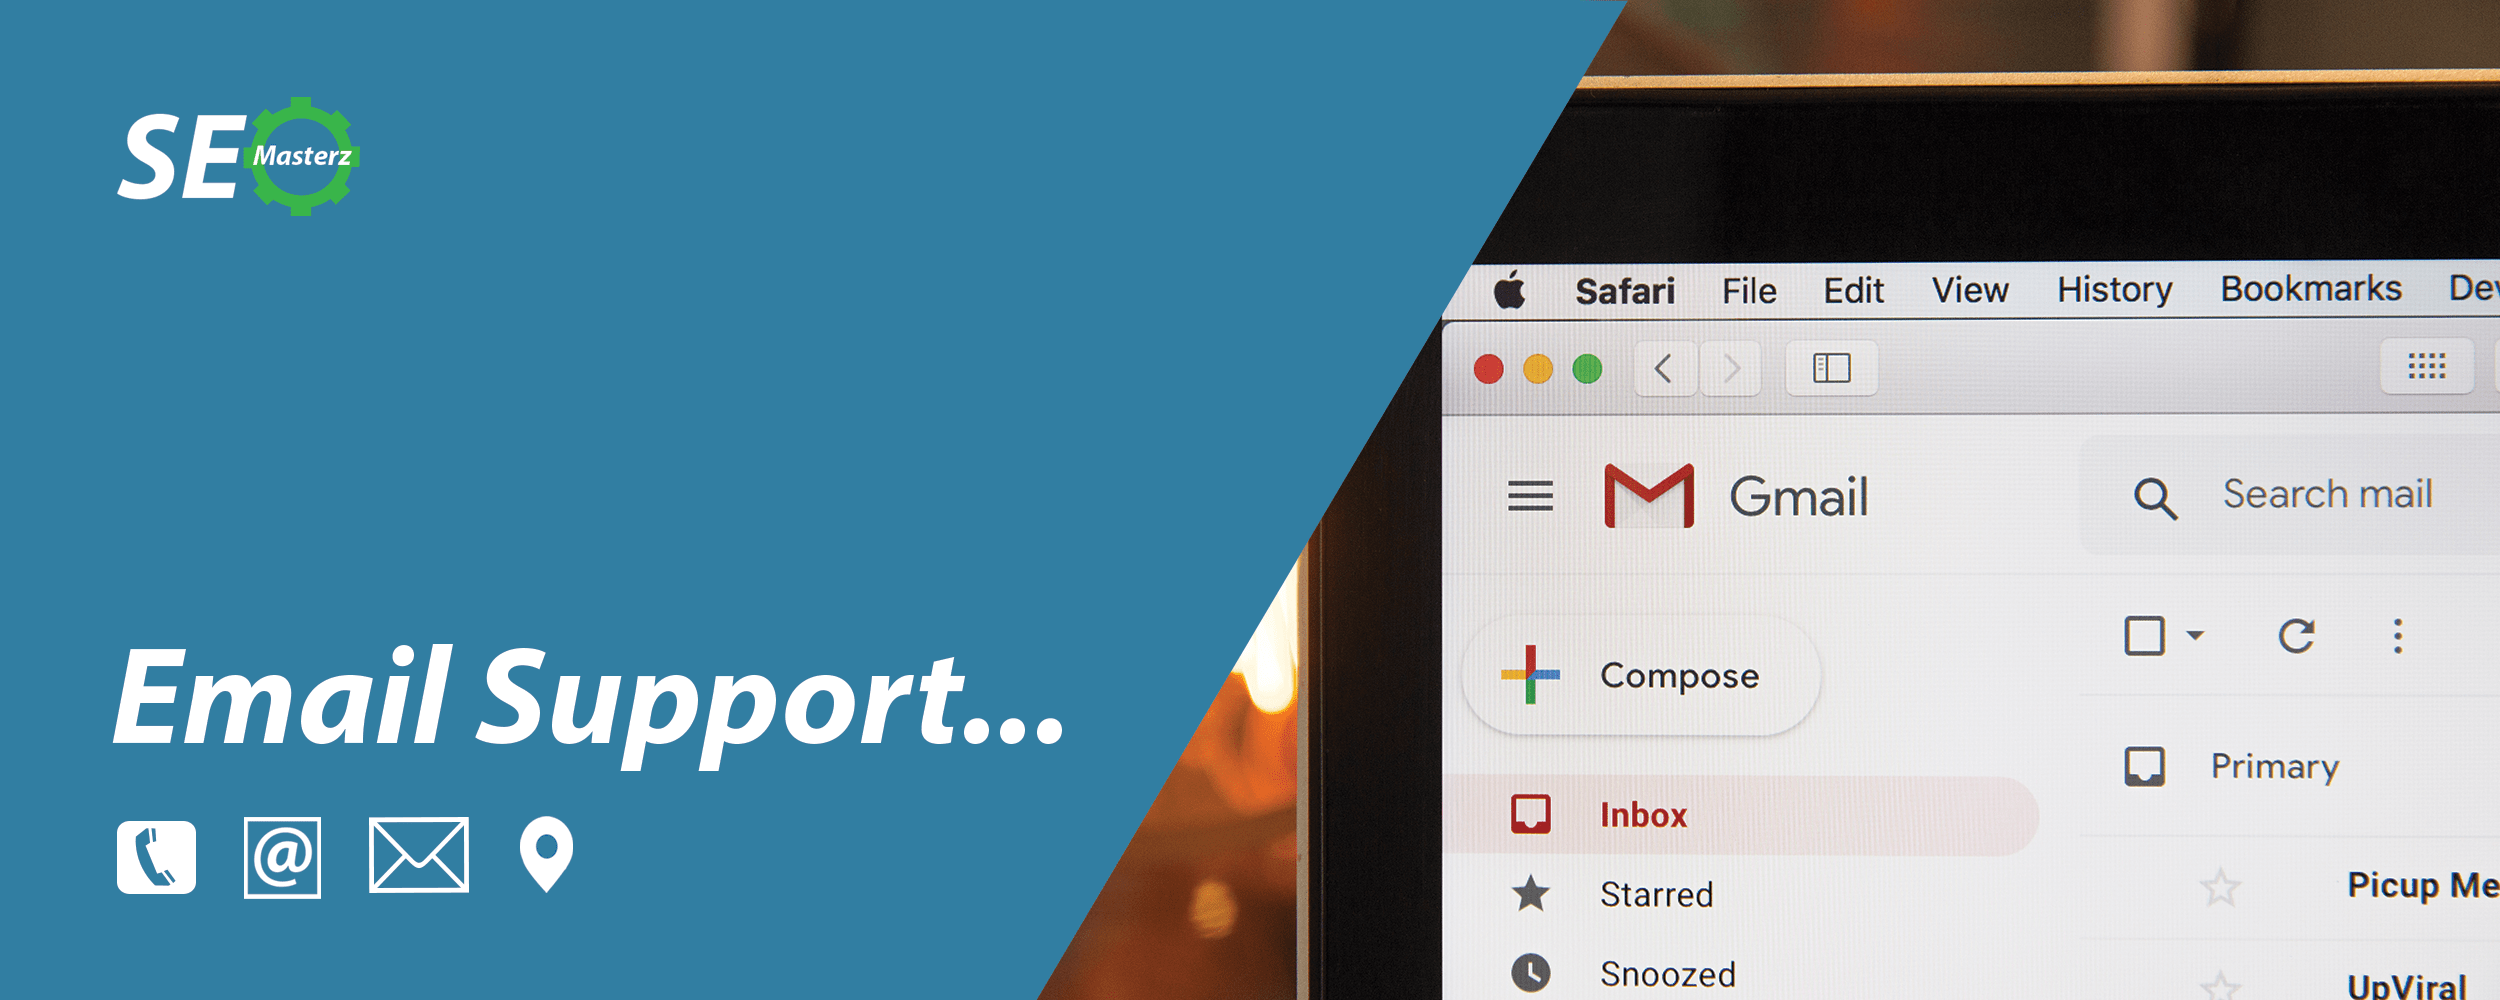 EmailSupport